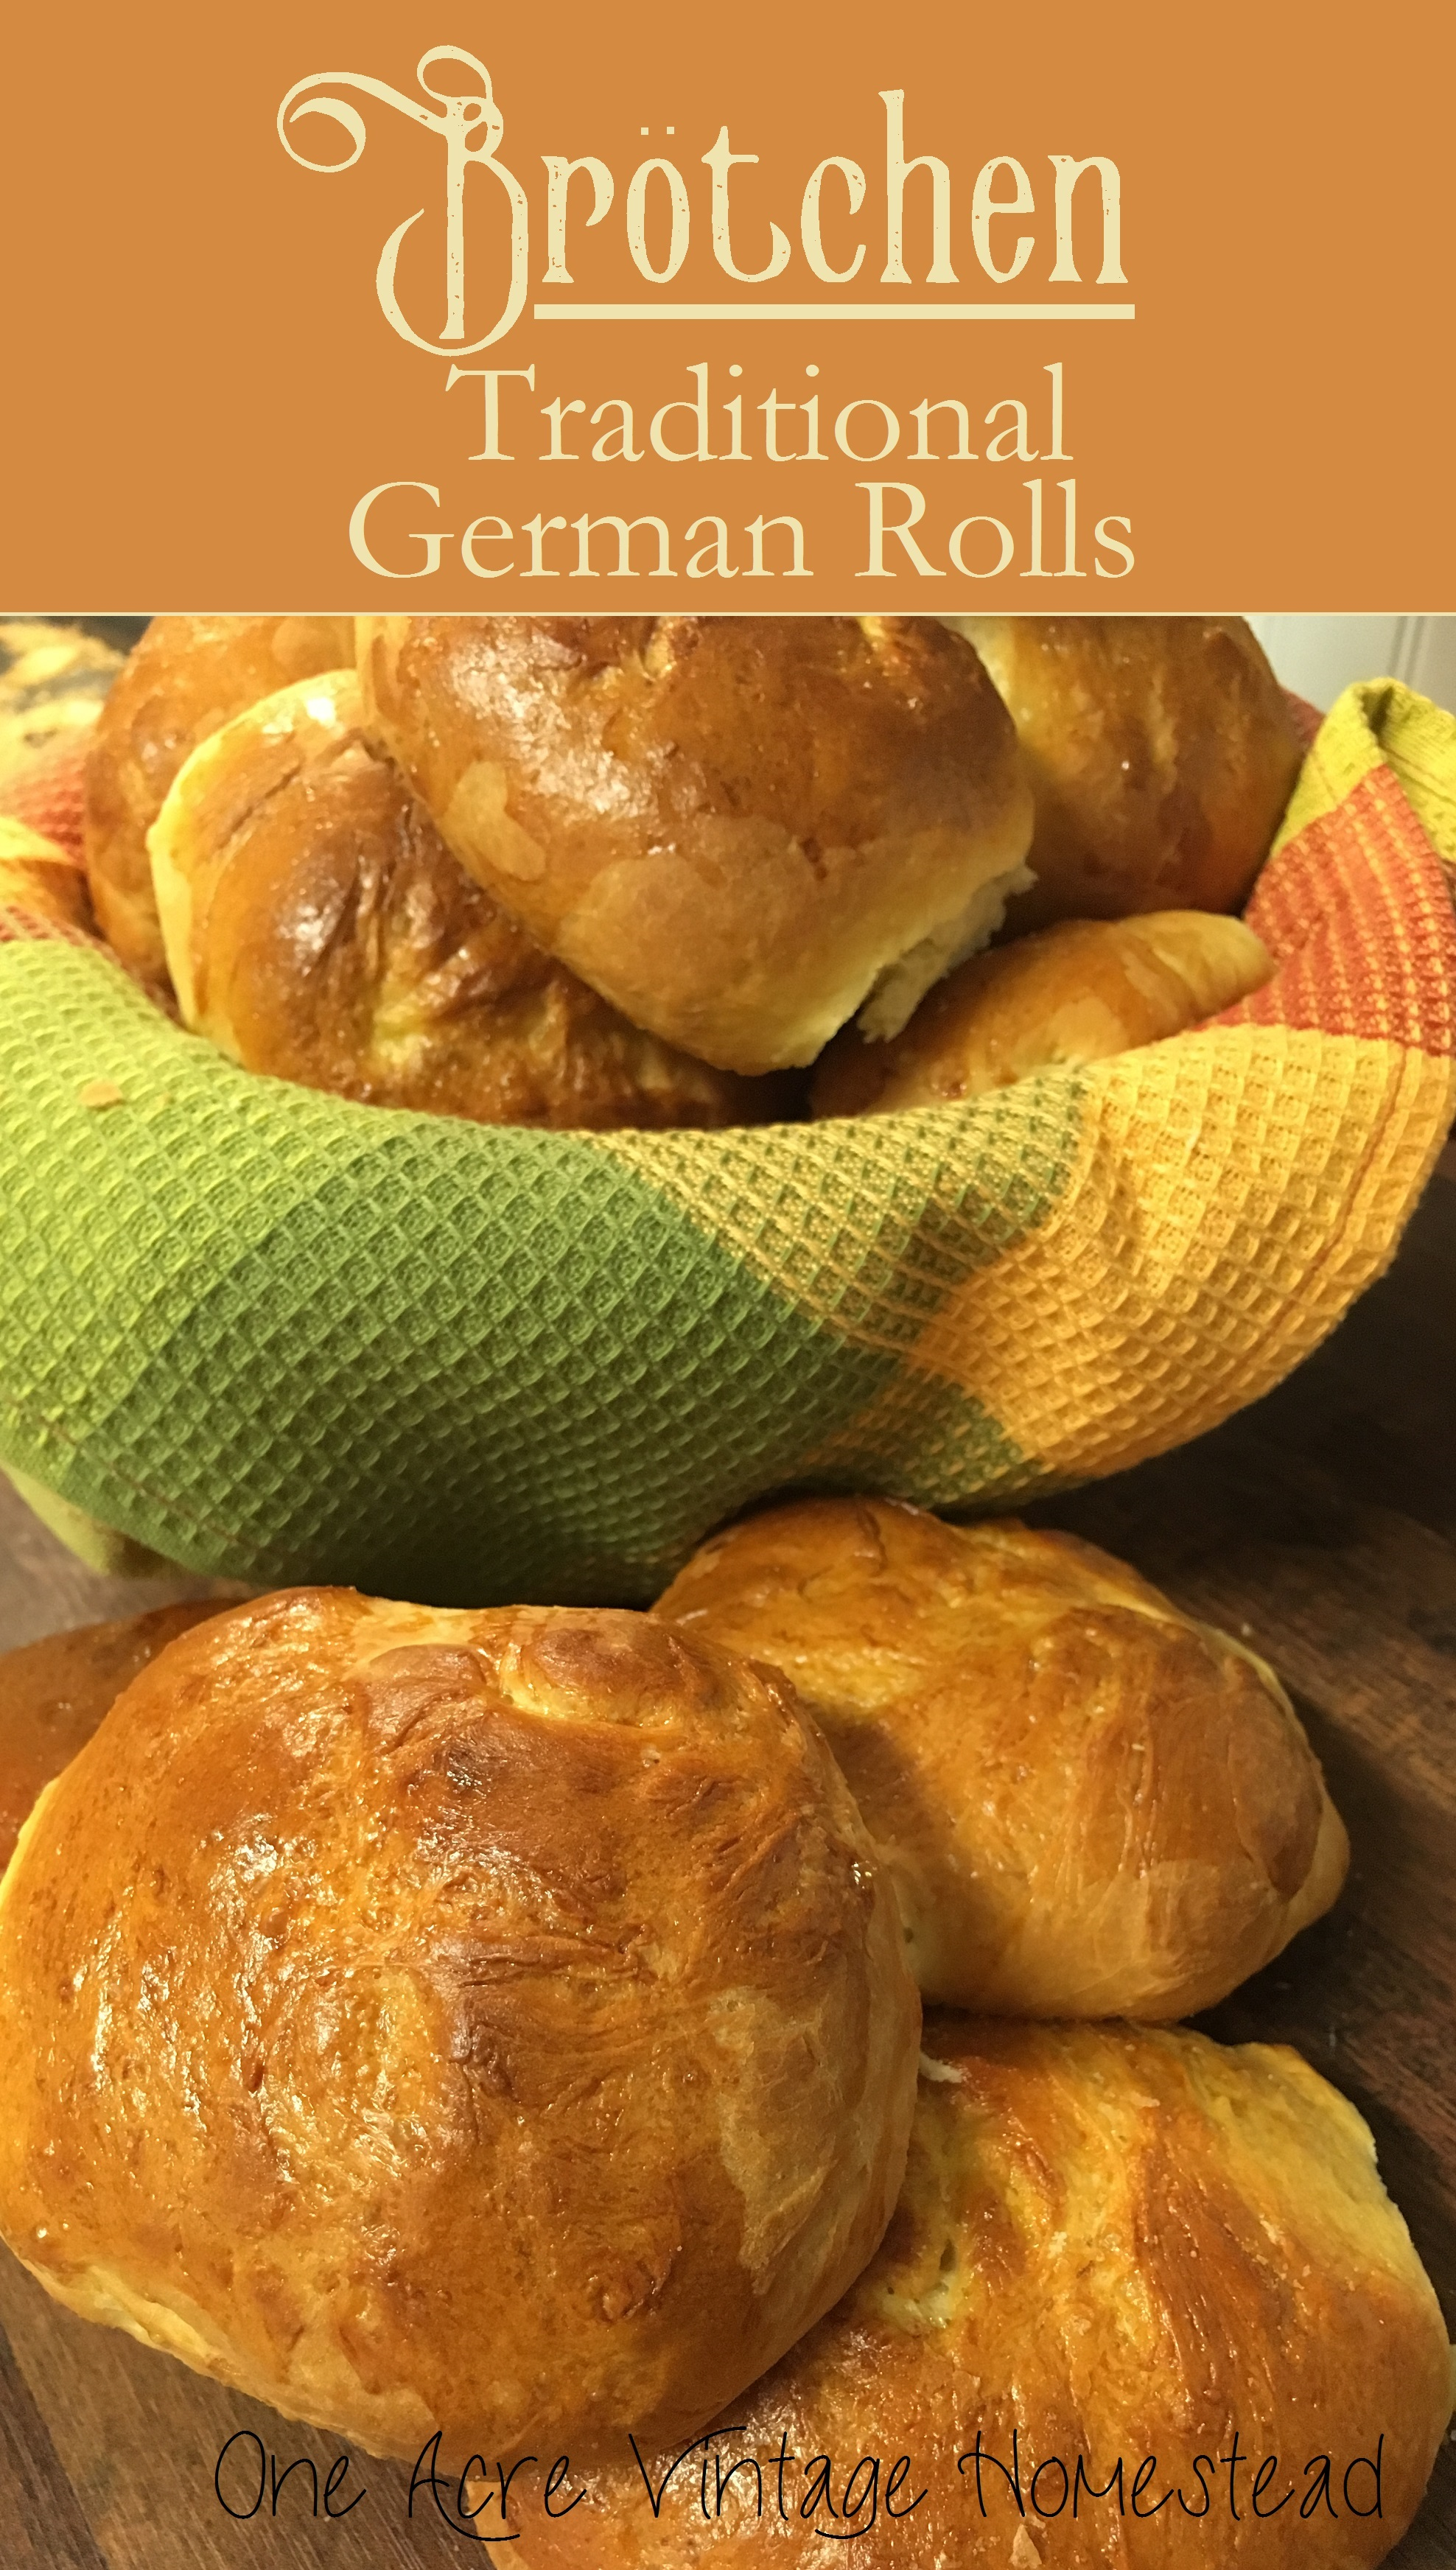 Brotchen traditional german rolls one acre vintage pumpkin brotchen traditional german rolls forumfinder Image collections